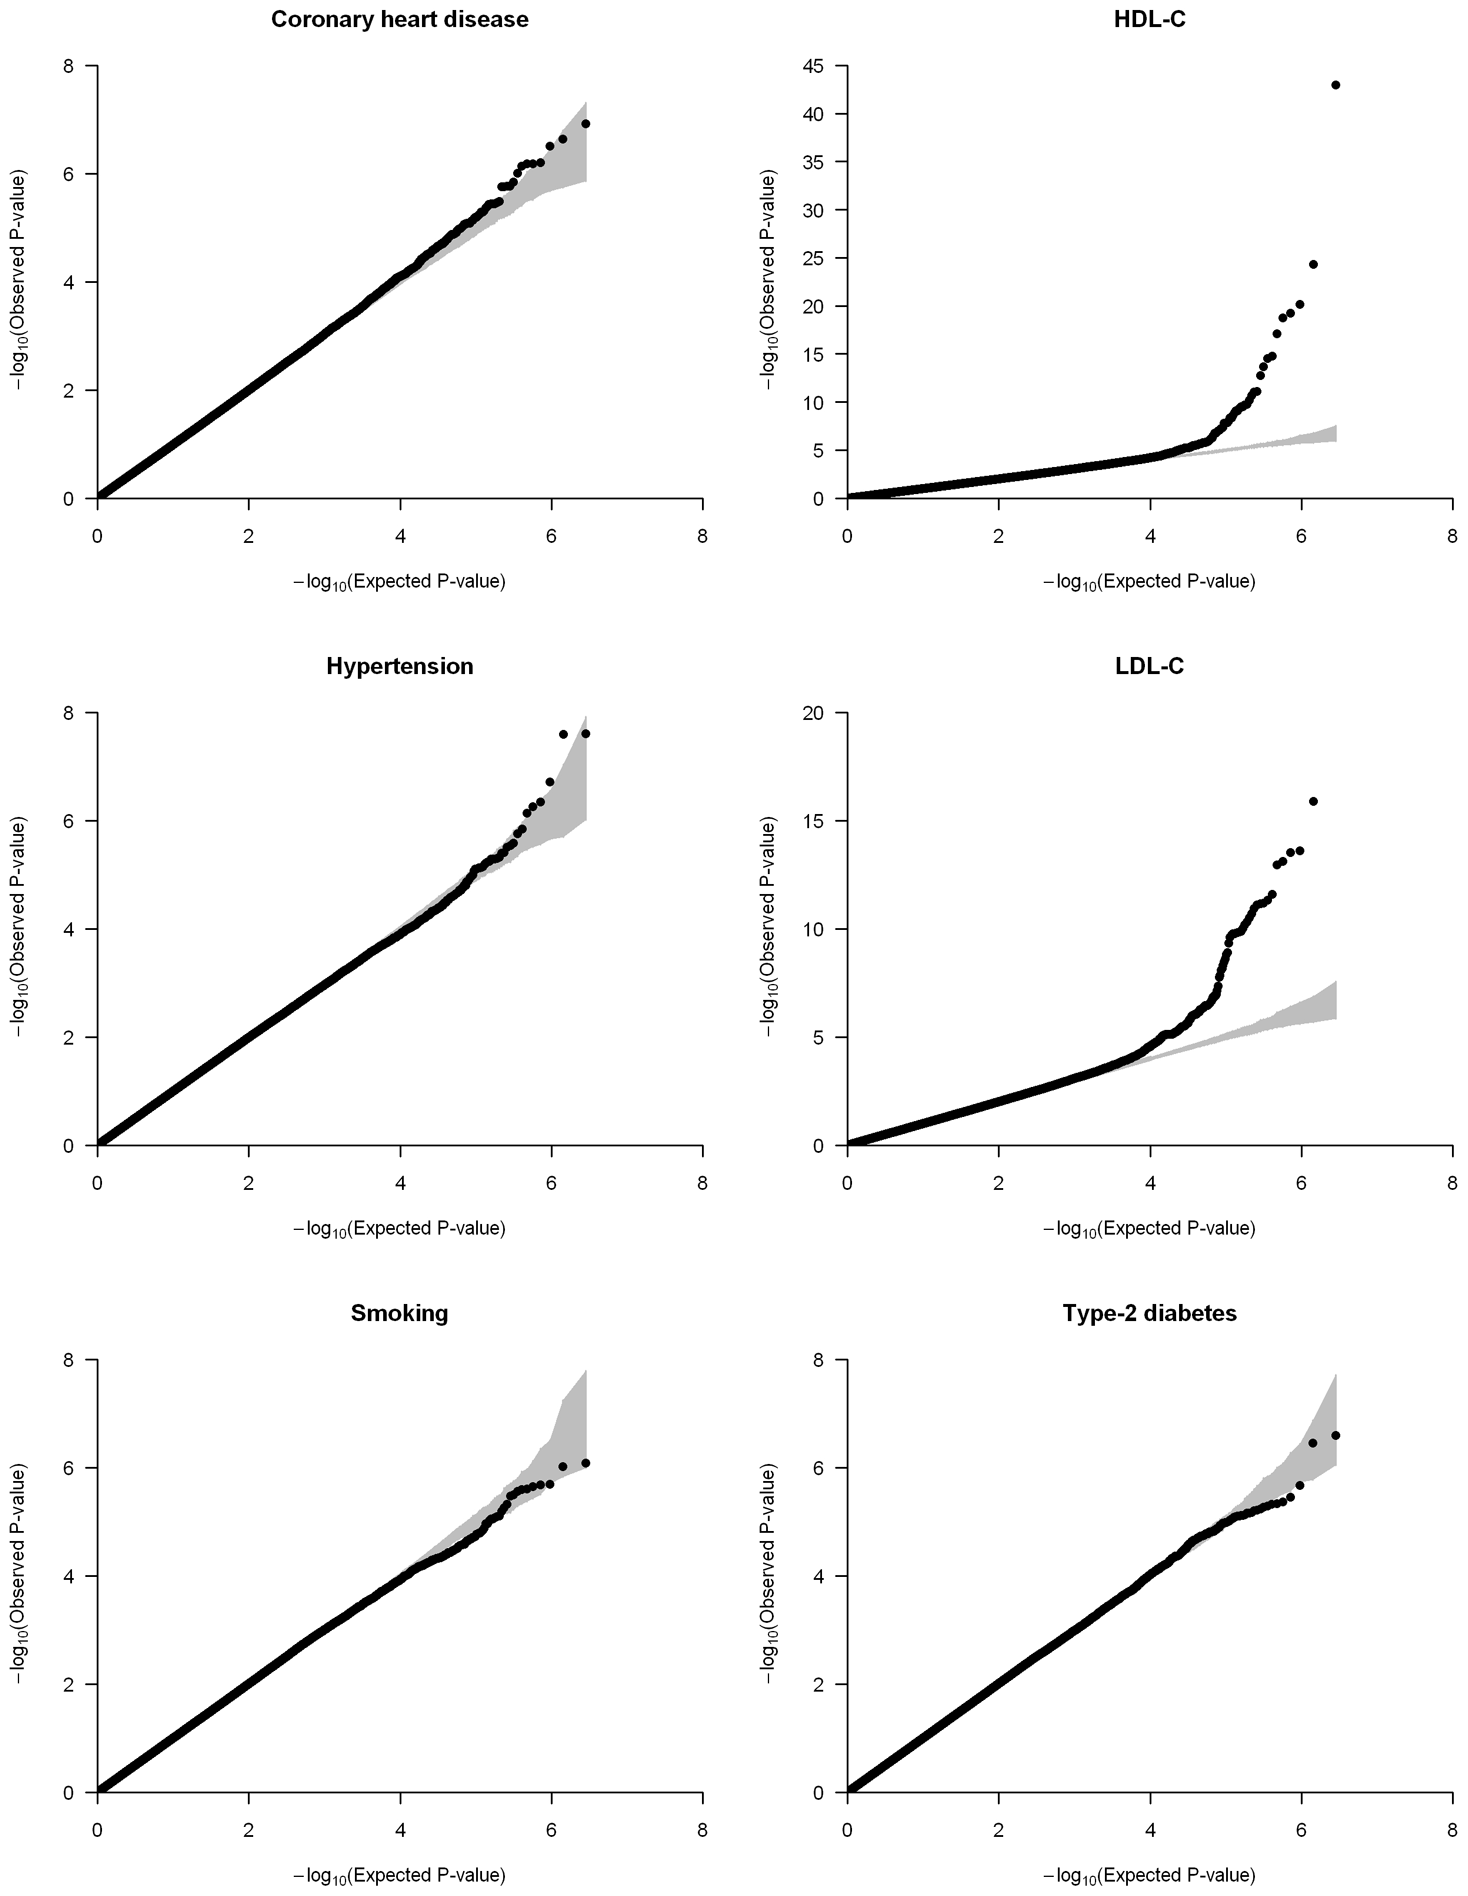 Quantile-quantile (QQ) plots of the meta-analyses for coronary heart disease, HDL-C, hypertension, LDL-C, smoking, and type-2 diabetes analyzed in the CARe African-American samples (N = 8,090).